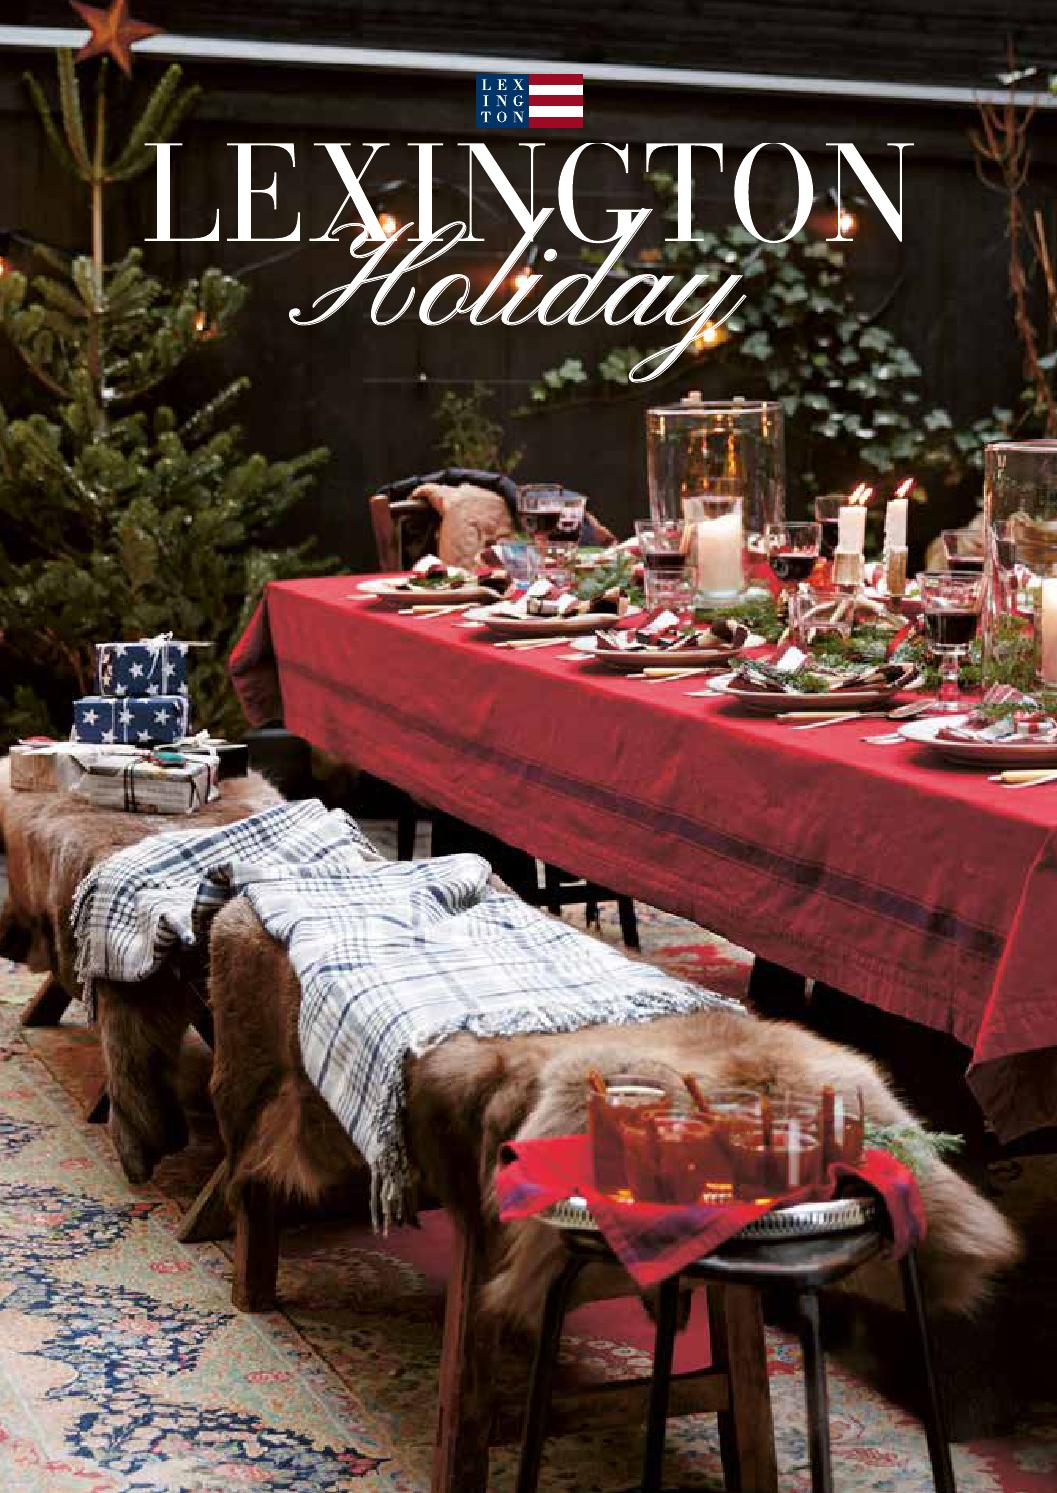 lexington company holiday 2014 by lexington company issuu. Black Bedroom Furniture Sets. Home Design Ideas